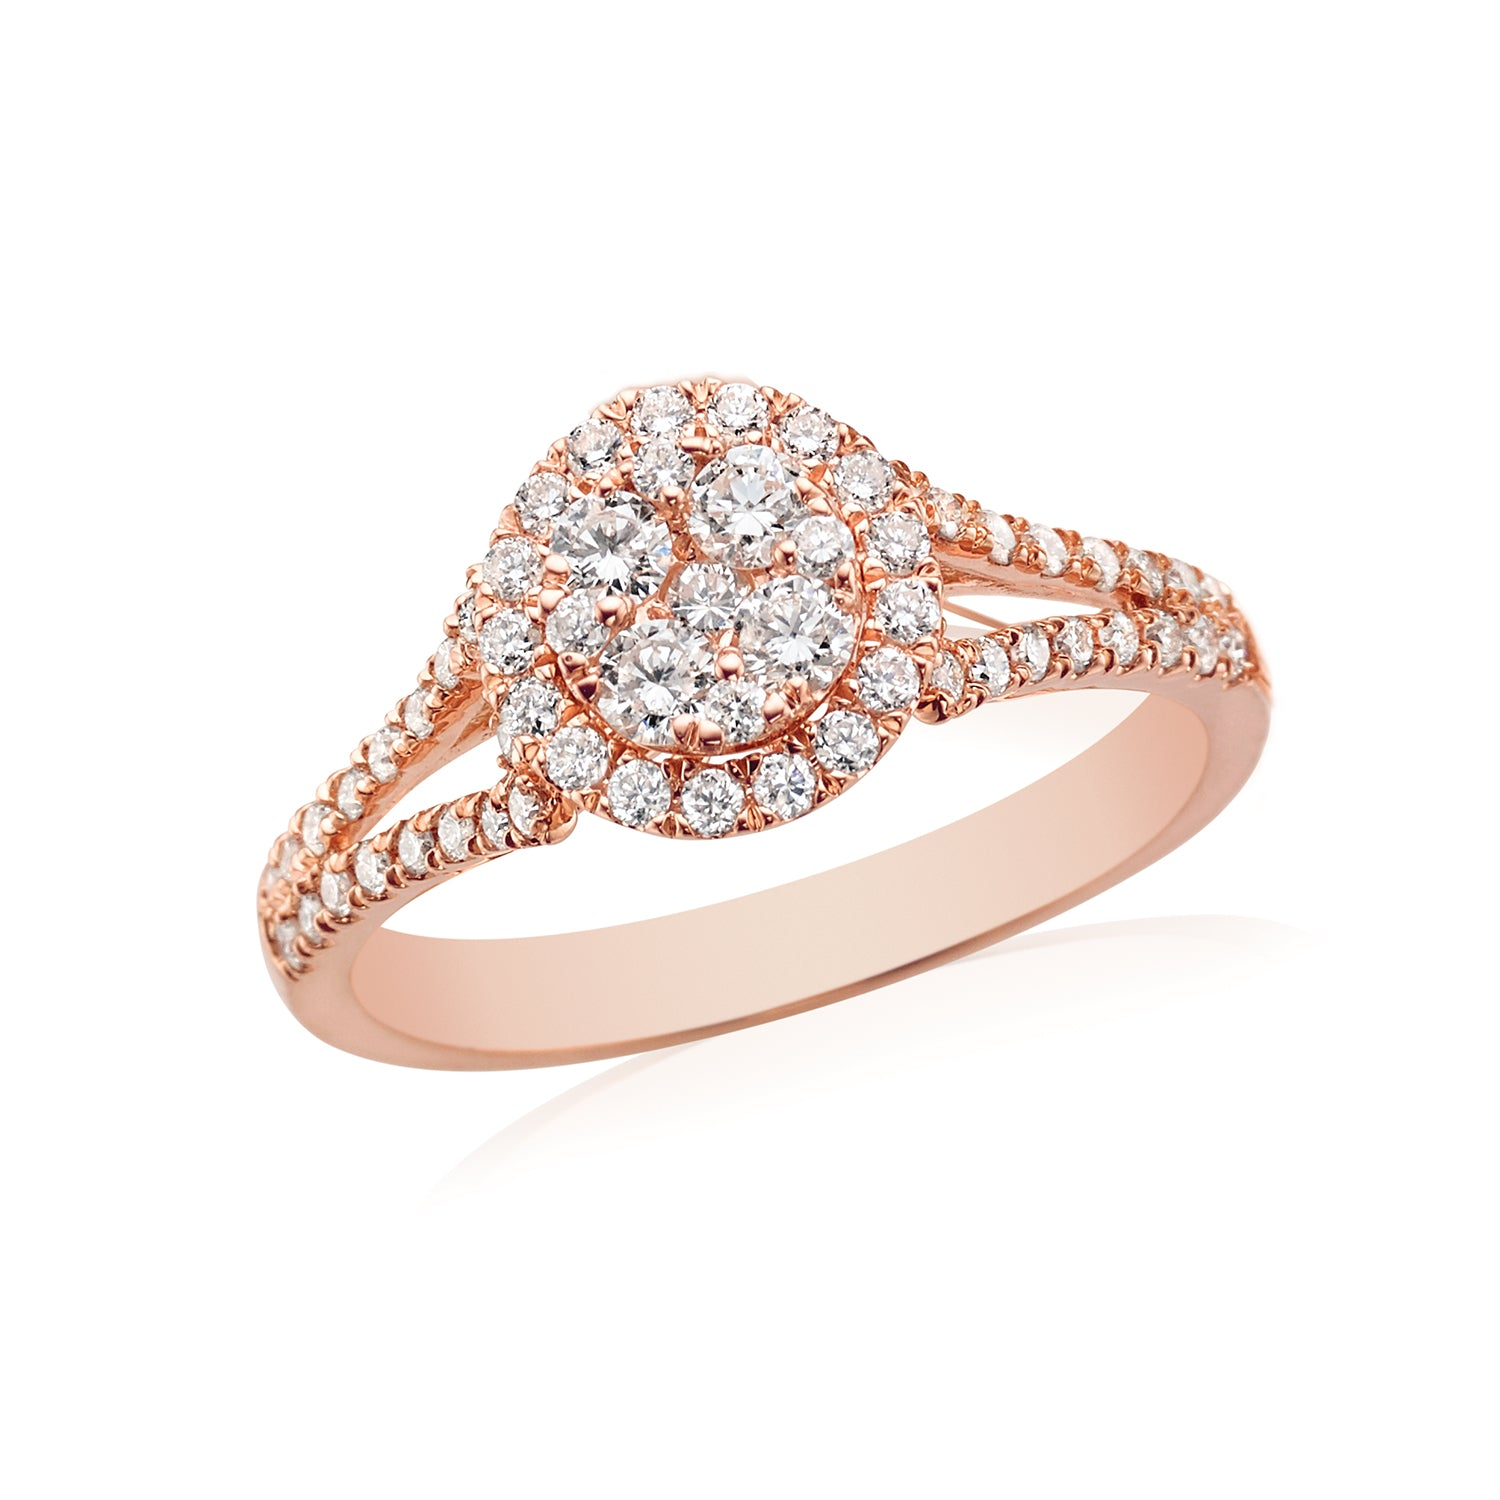 18ct Rose Gold Round Brilliant Cut with 0.70 CARAT tw of Diamonds